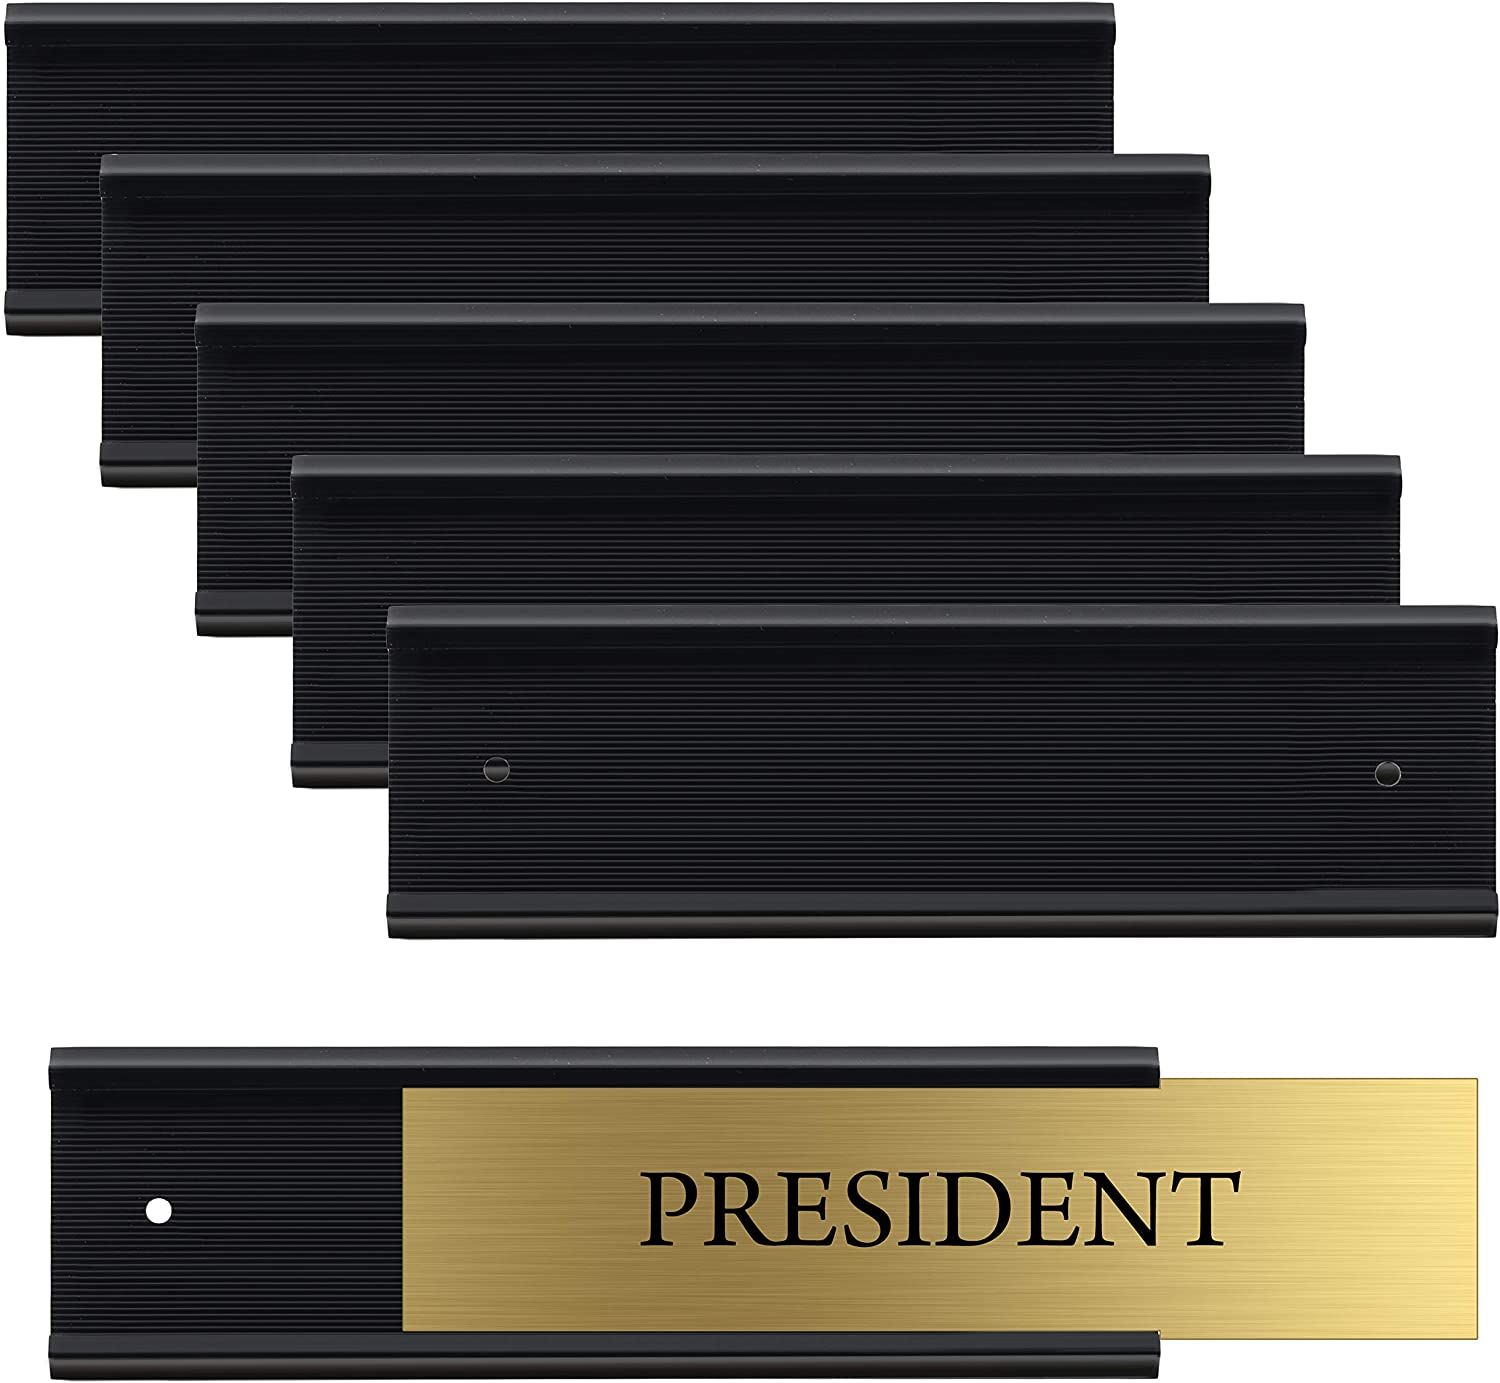 "Set of 6 – Sturdy and Elegant Black Aluminum Wall Mount Name Plate Holder, Office Business Door Sign Holder, 8"" X 2"" - Hardware and Inserts are Not Included"